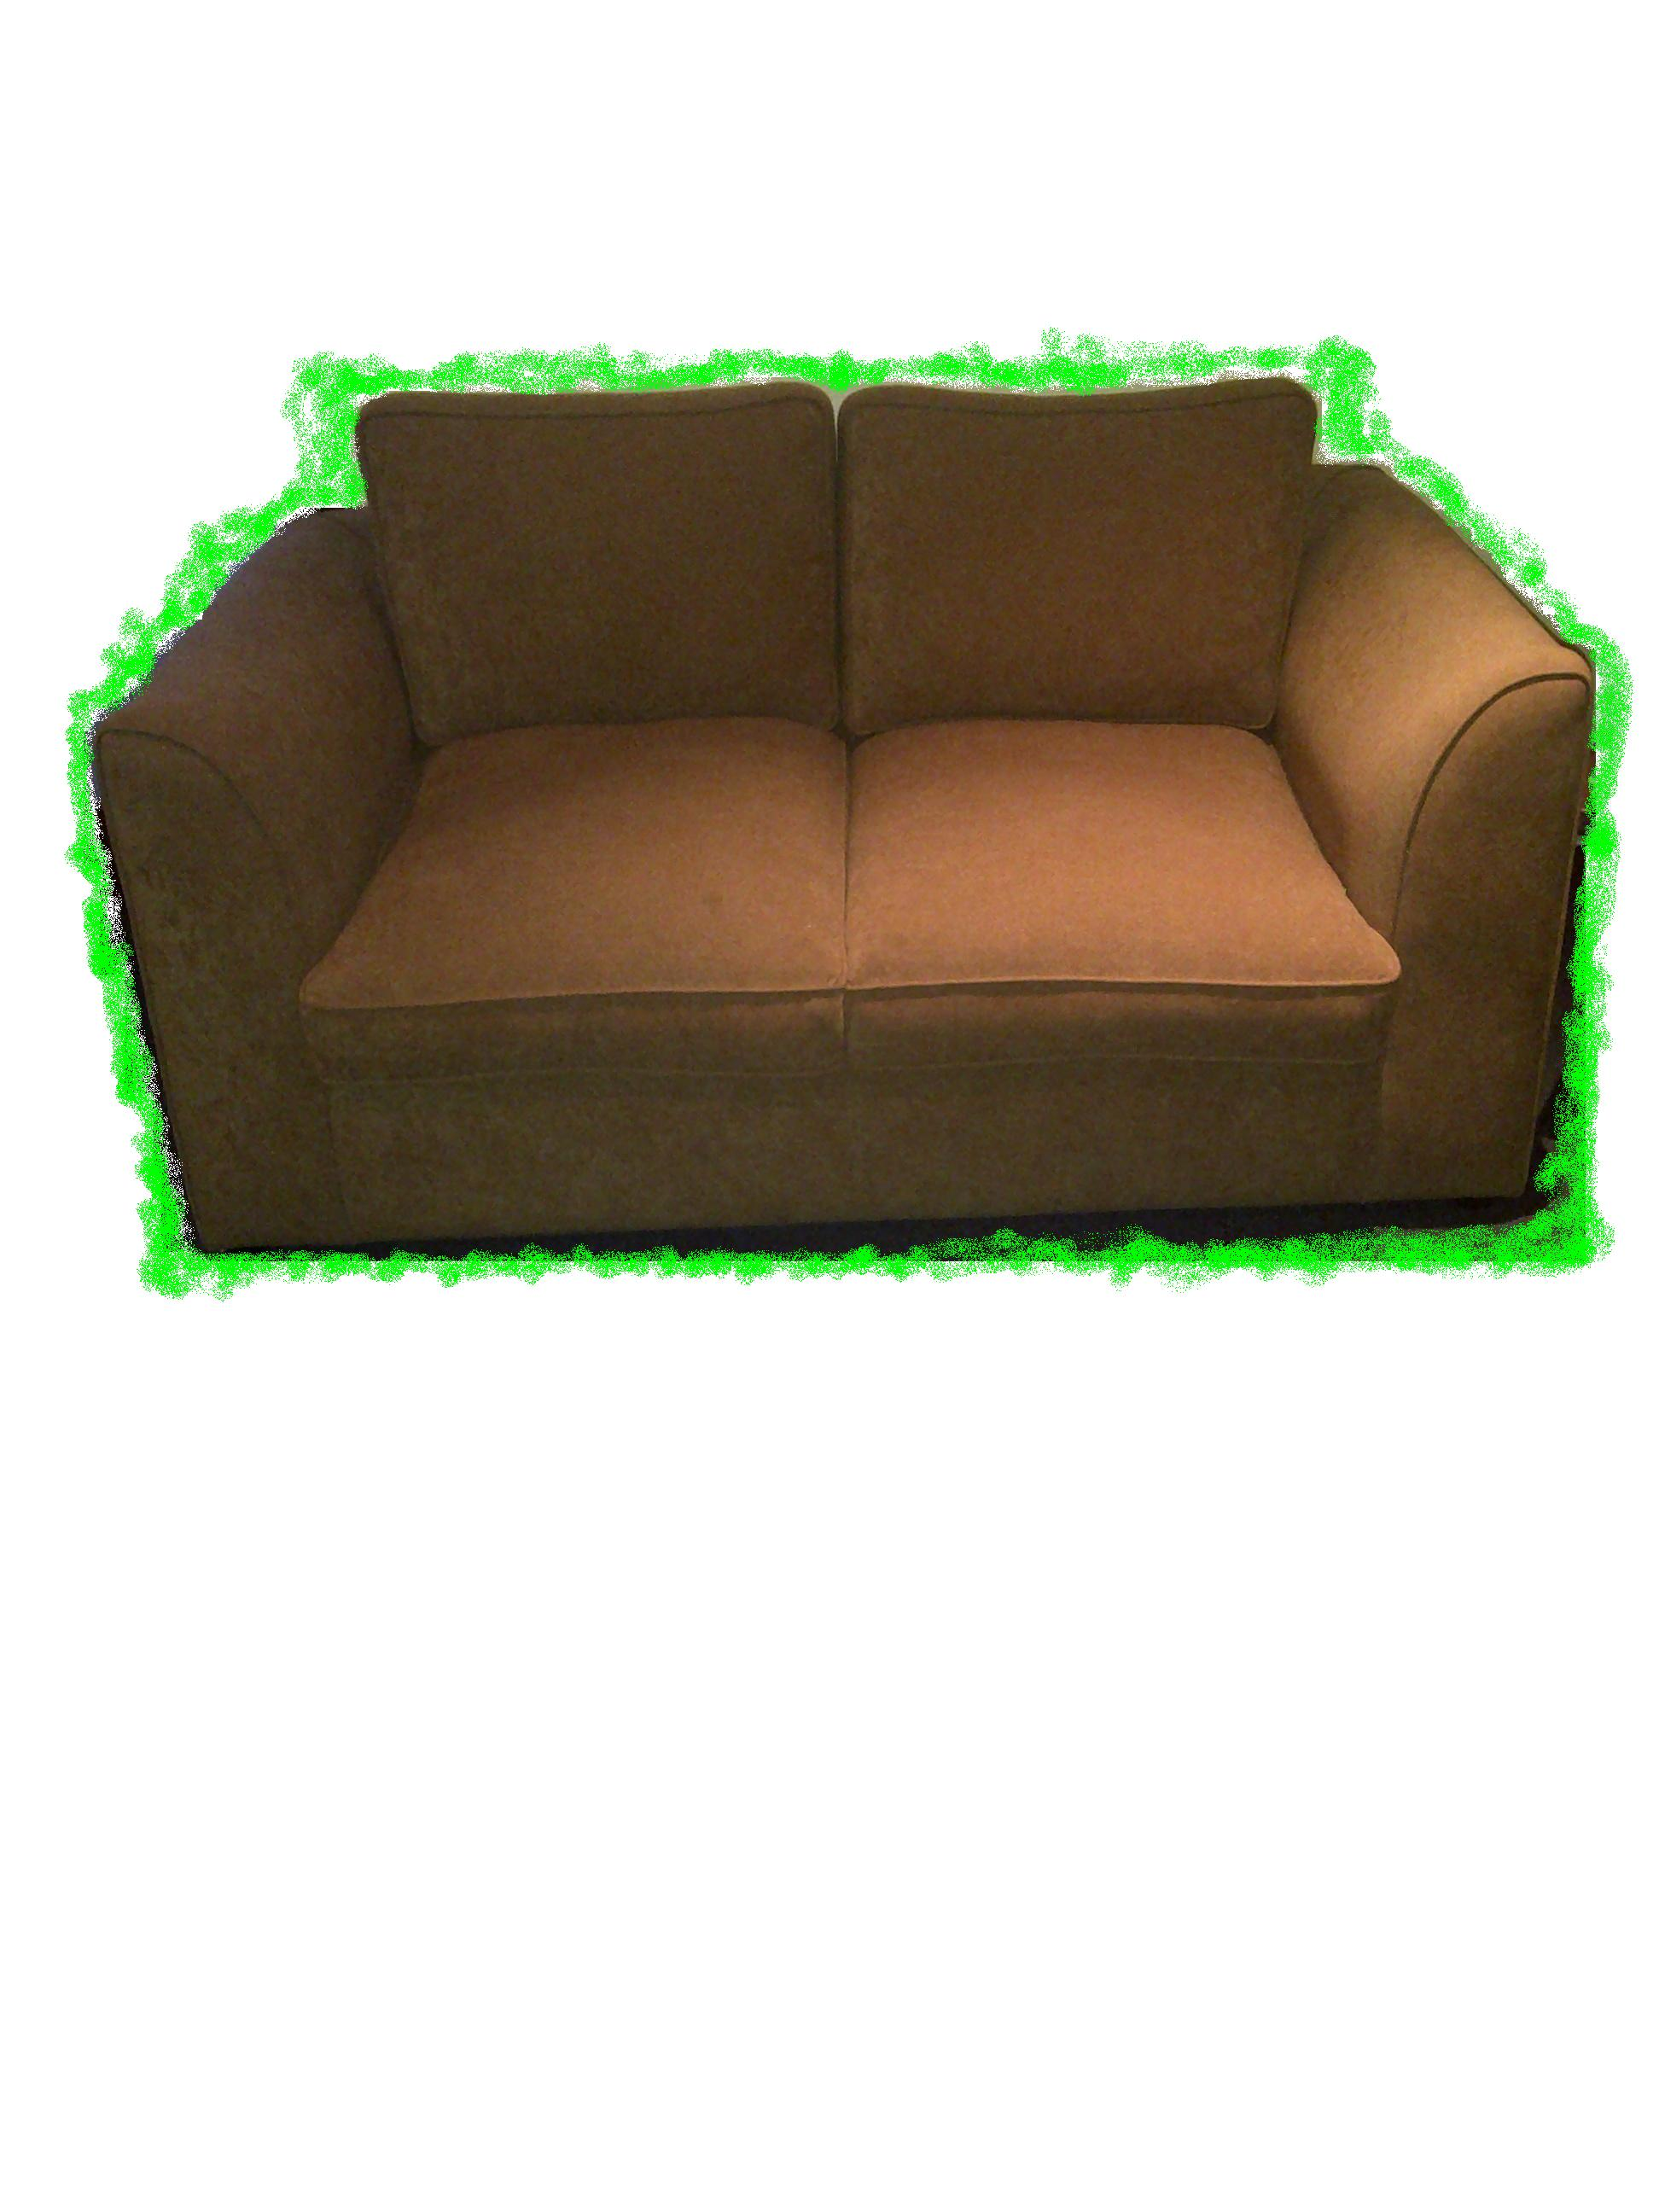 Sleeper Couch with Back Cushions